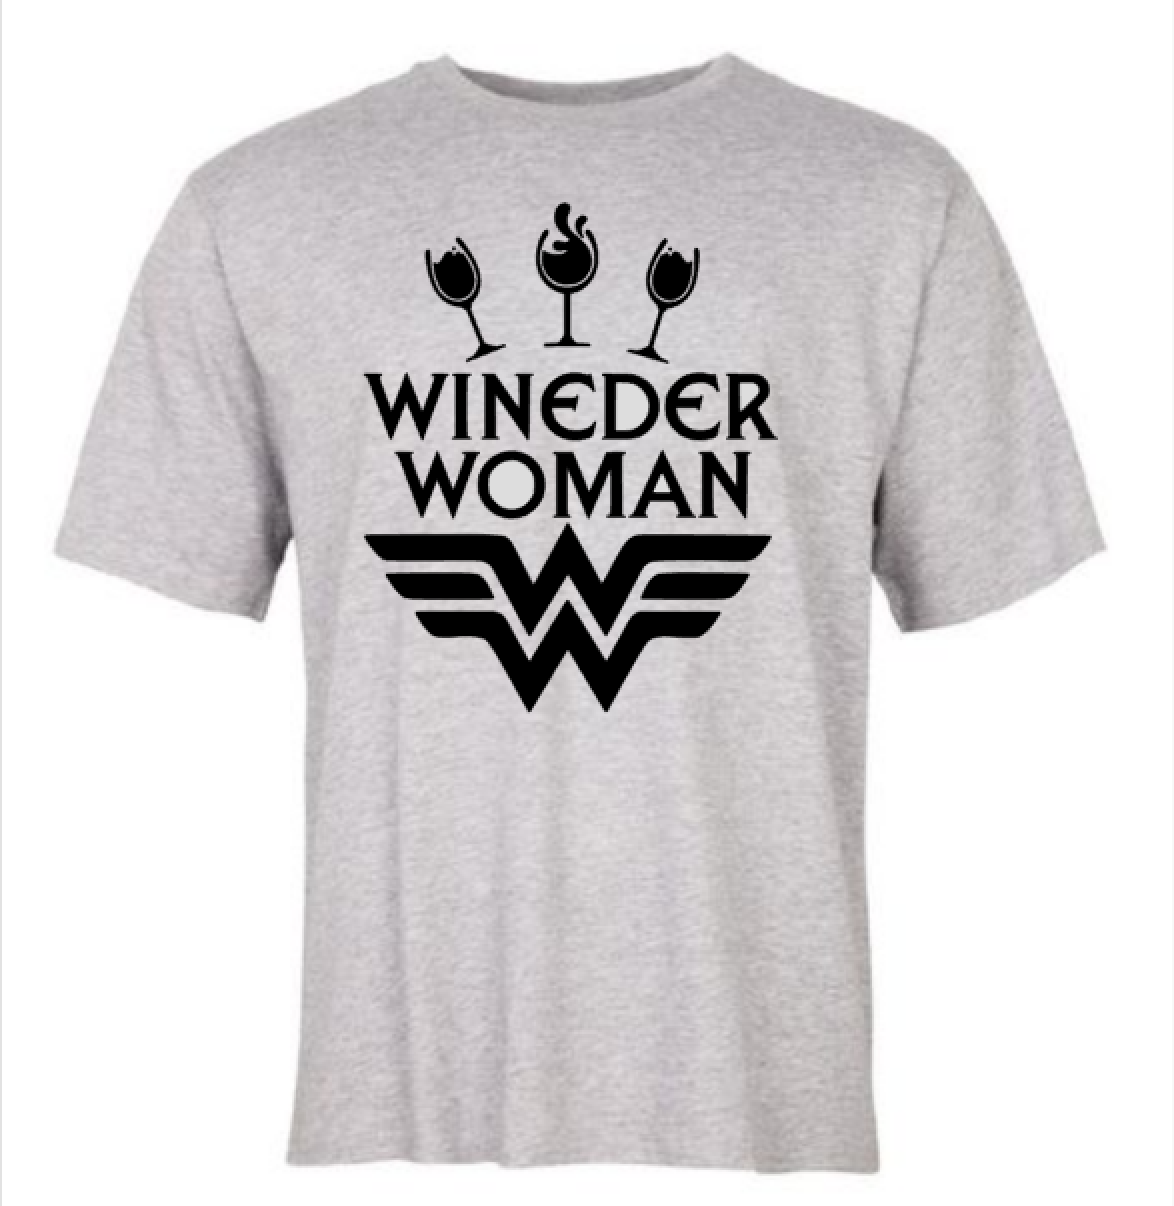 Wineder Woman T-shirt